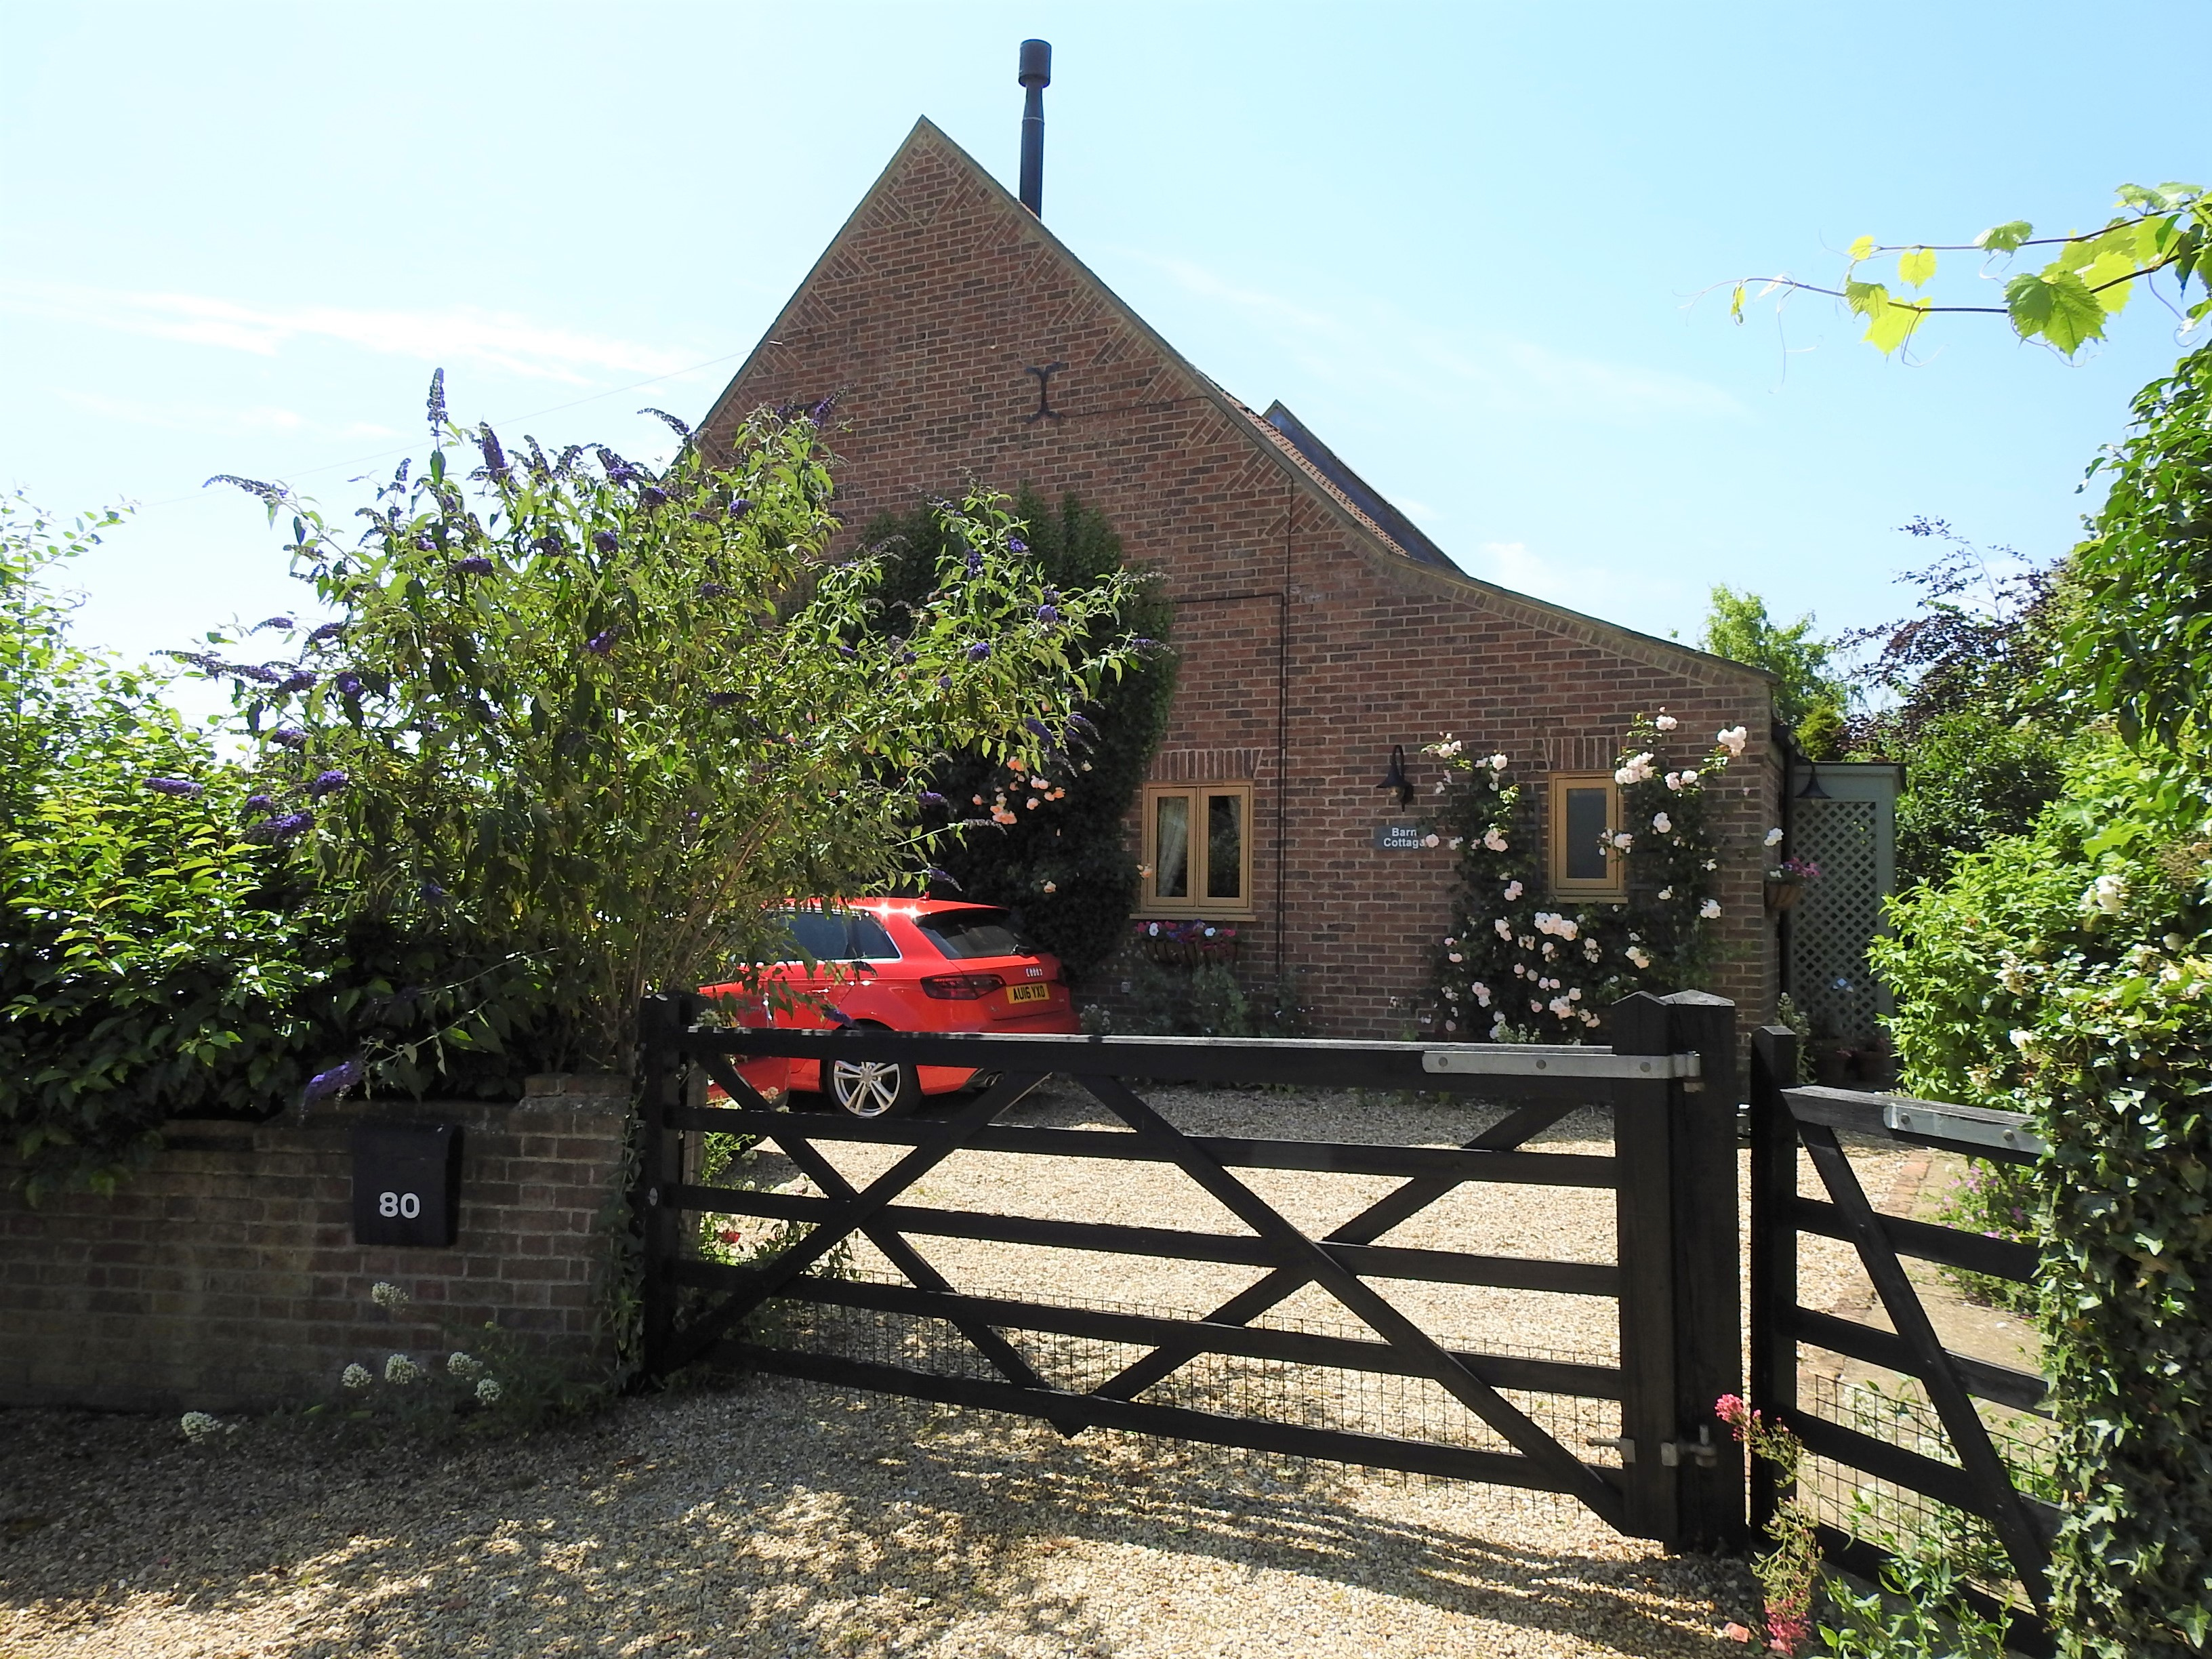 Barn Cottage 80 Stow Road, Wiggenhall St Mary Magdalen PE34 3DJ